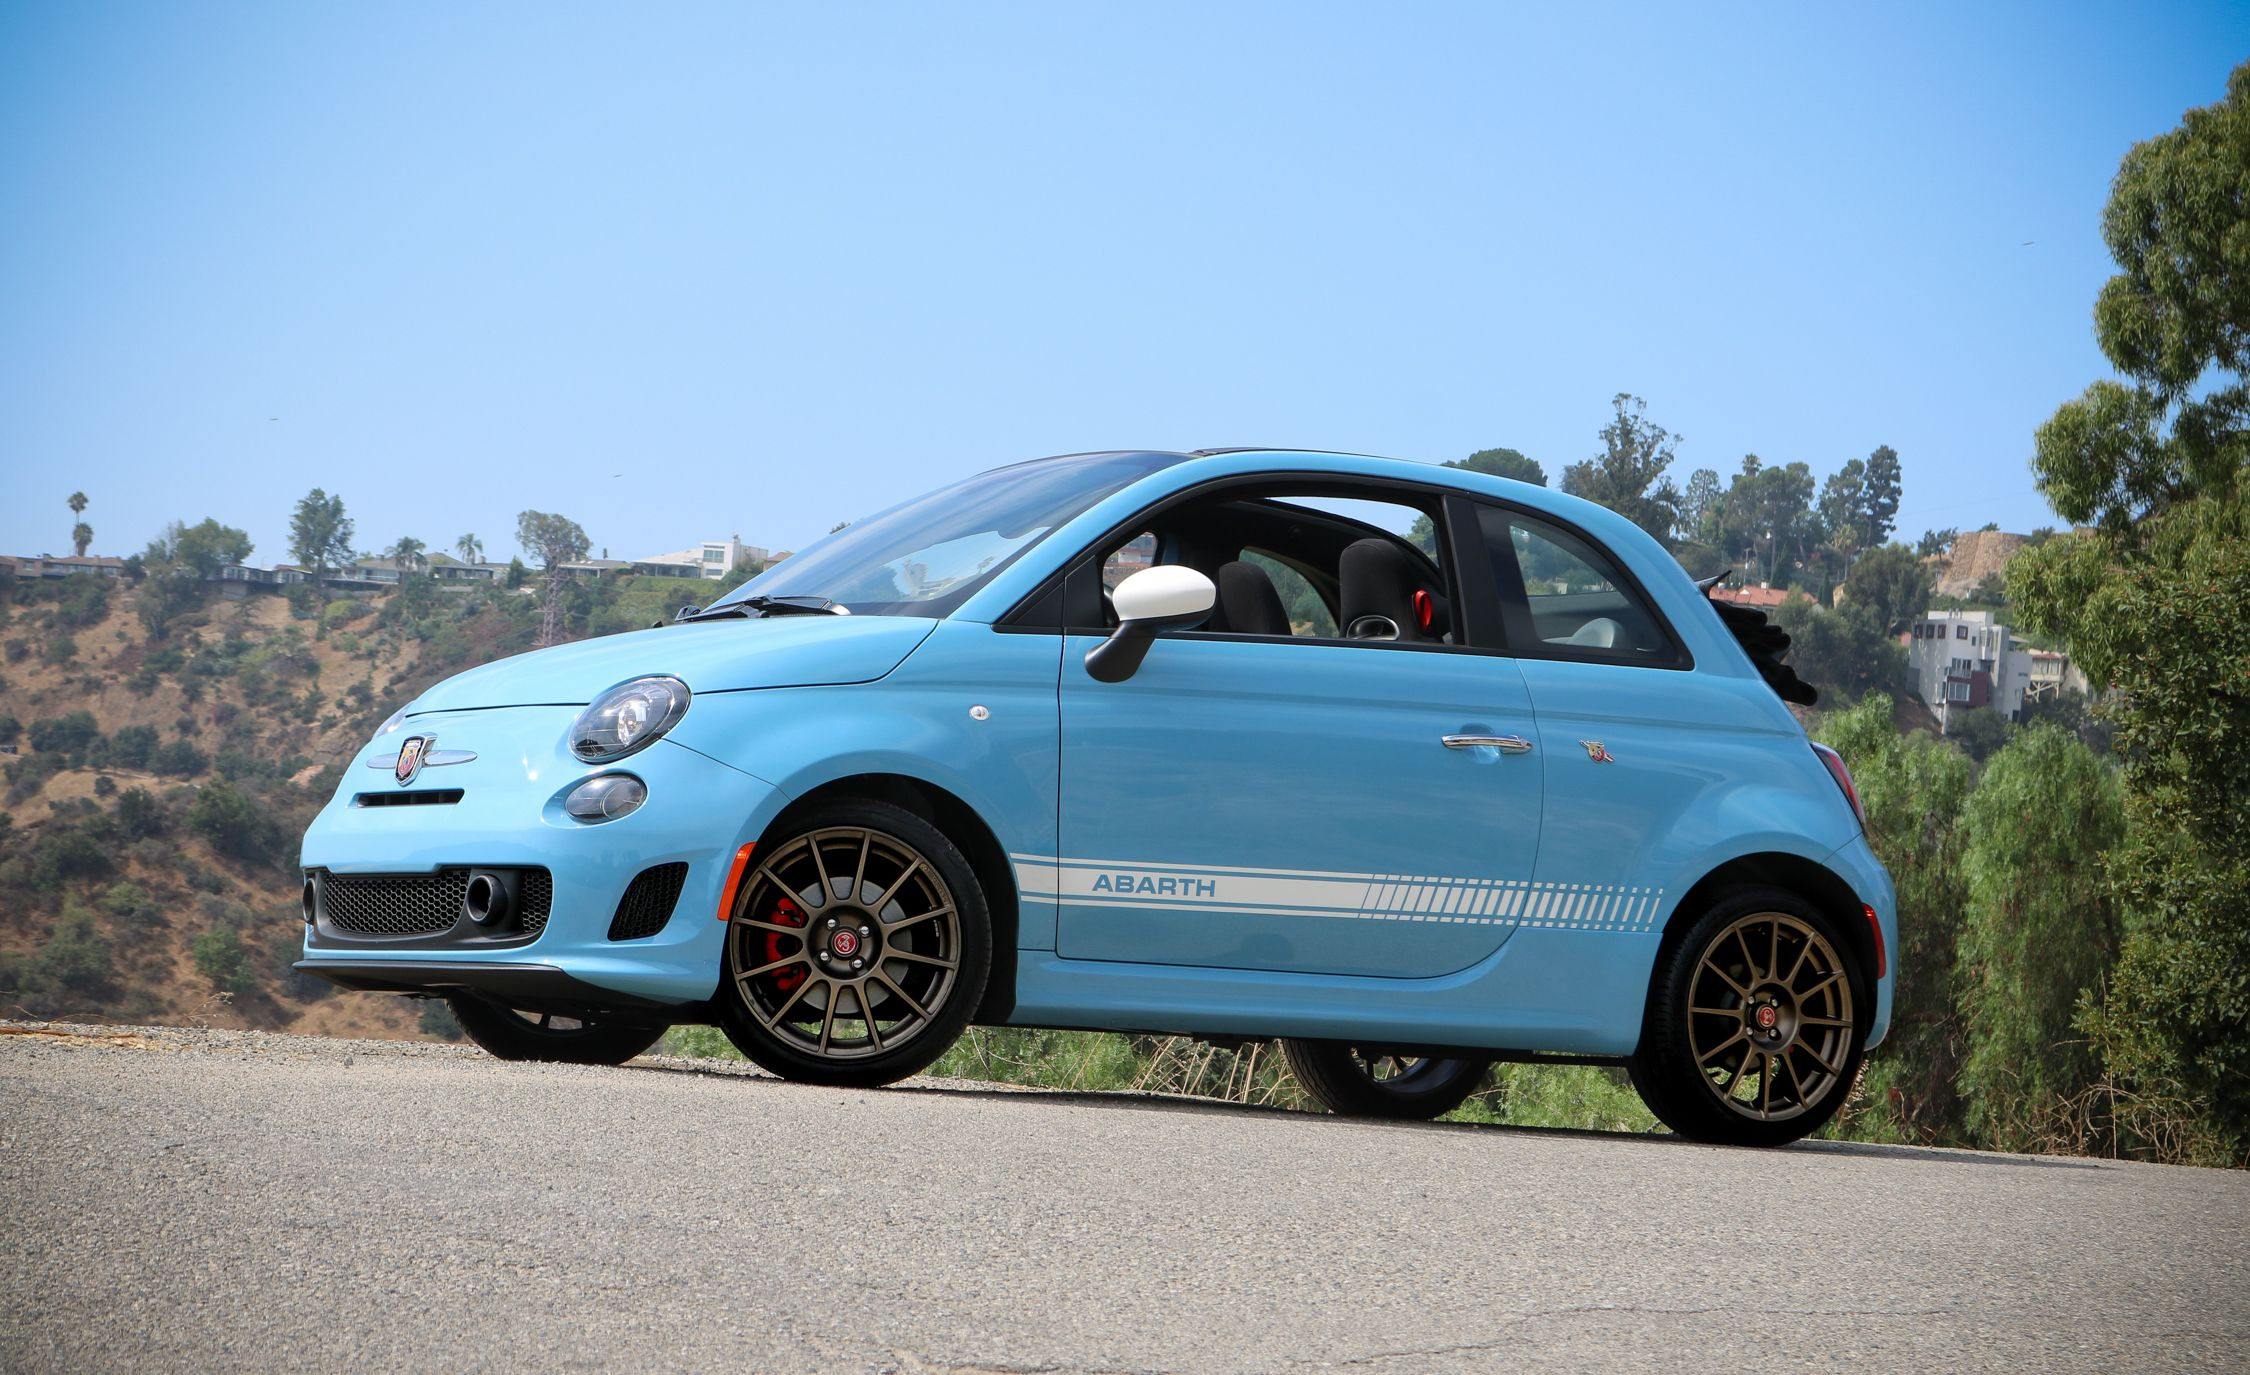 Fiat 500 / 500C Abarth Reviews | Fiat 500 / 500C Abarth Price ...